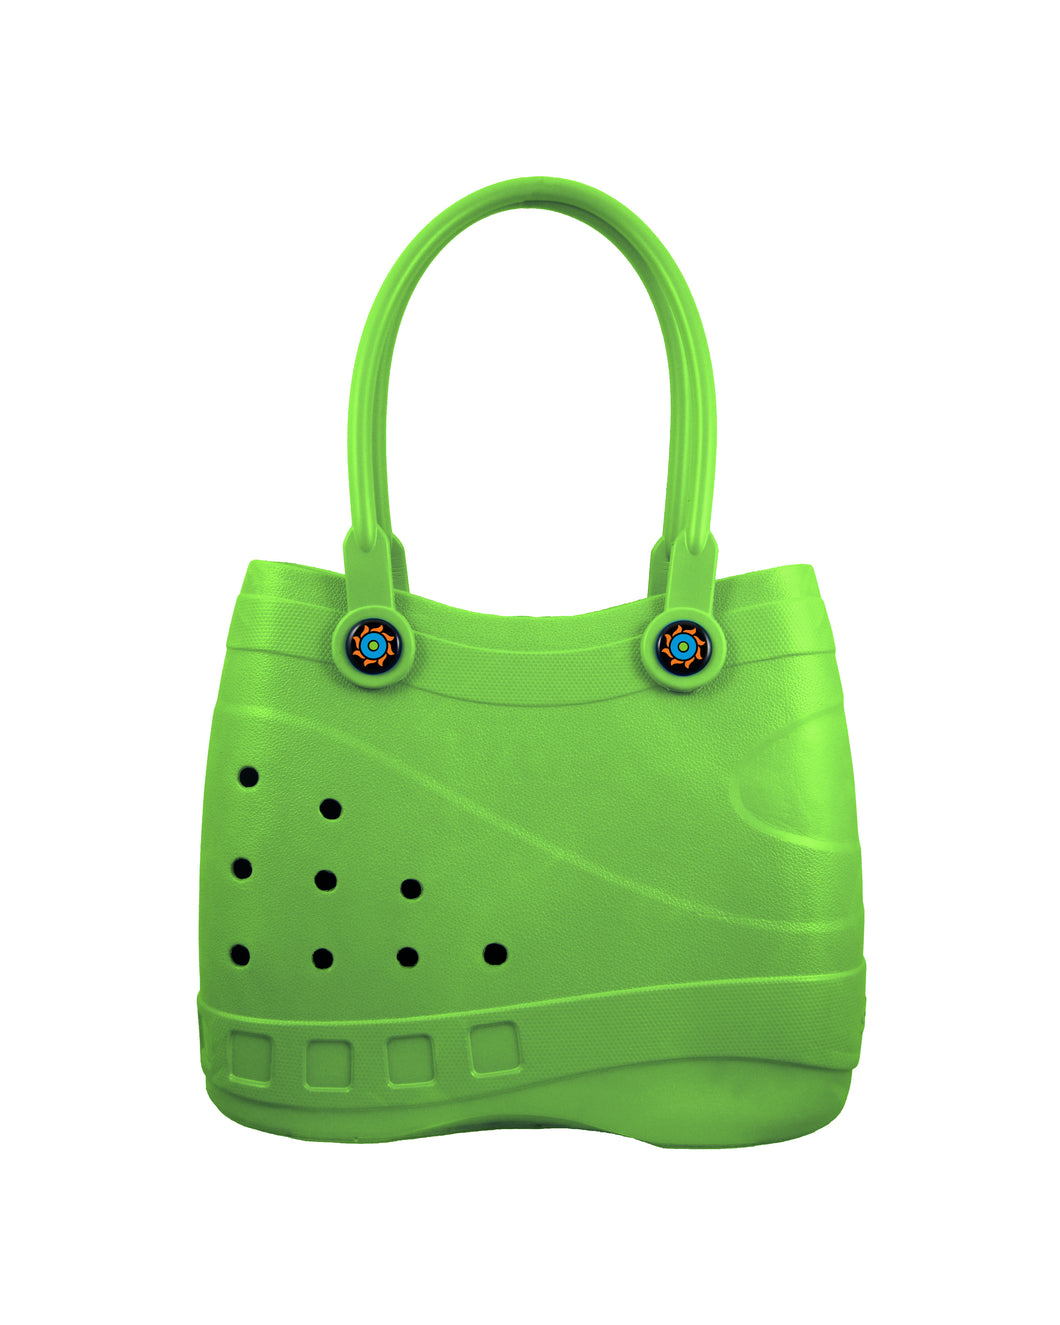 Optari - Sol Tote - Green, Small